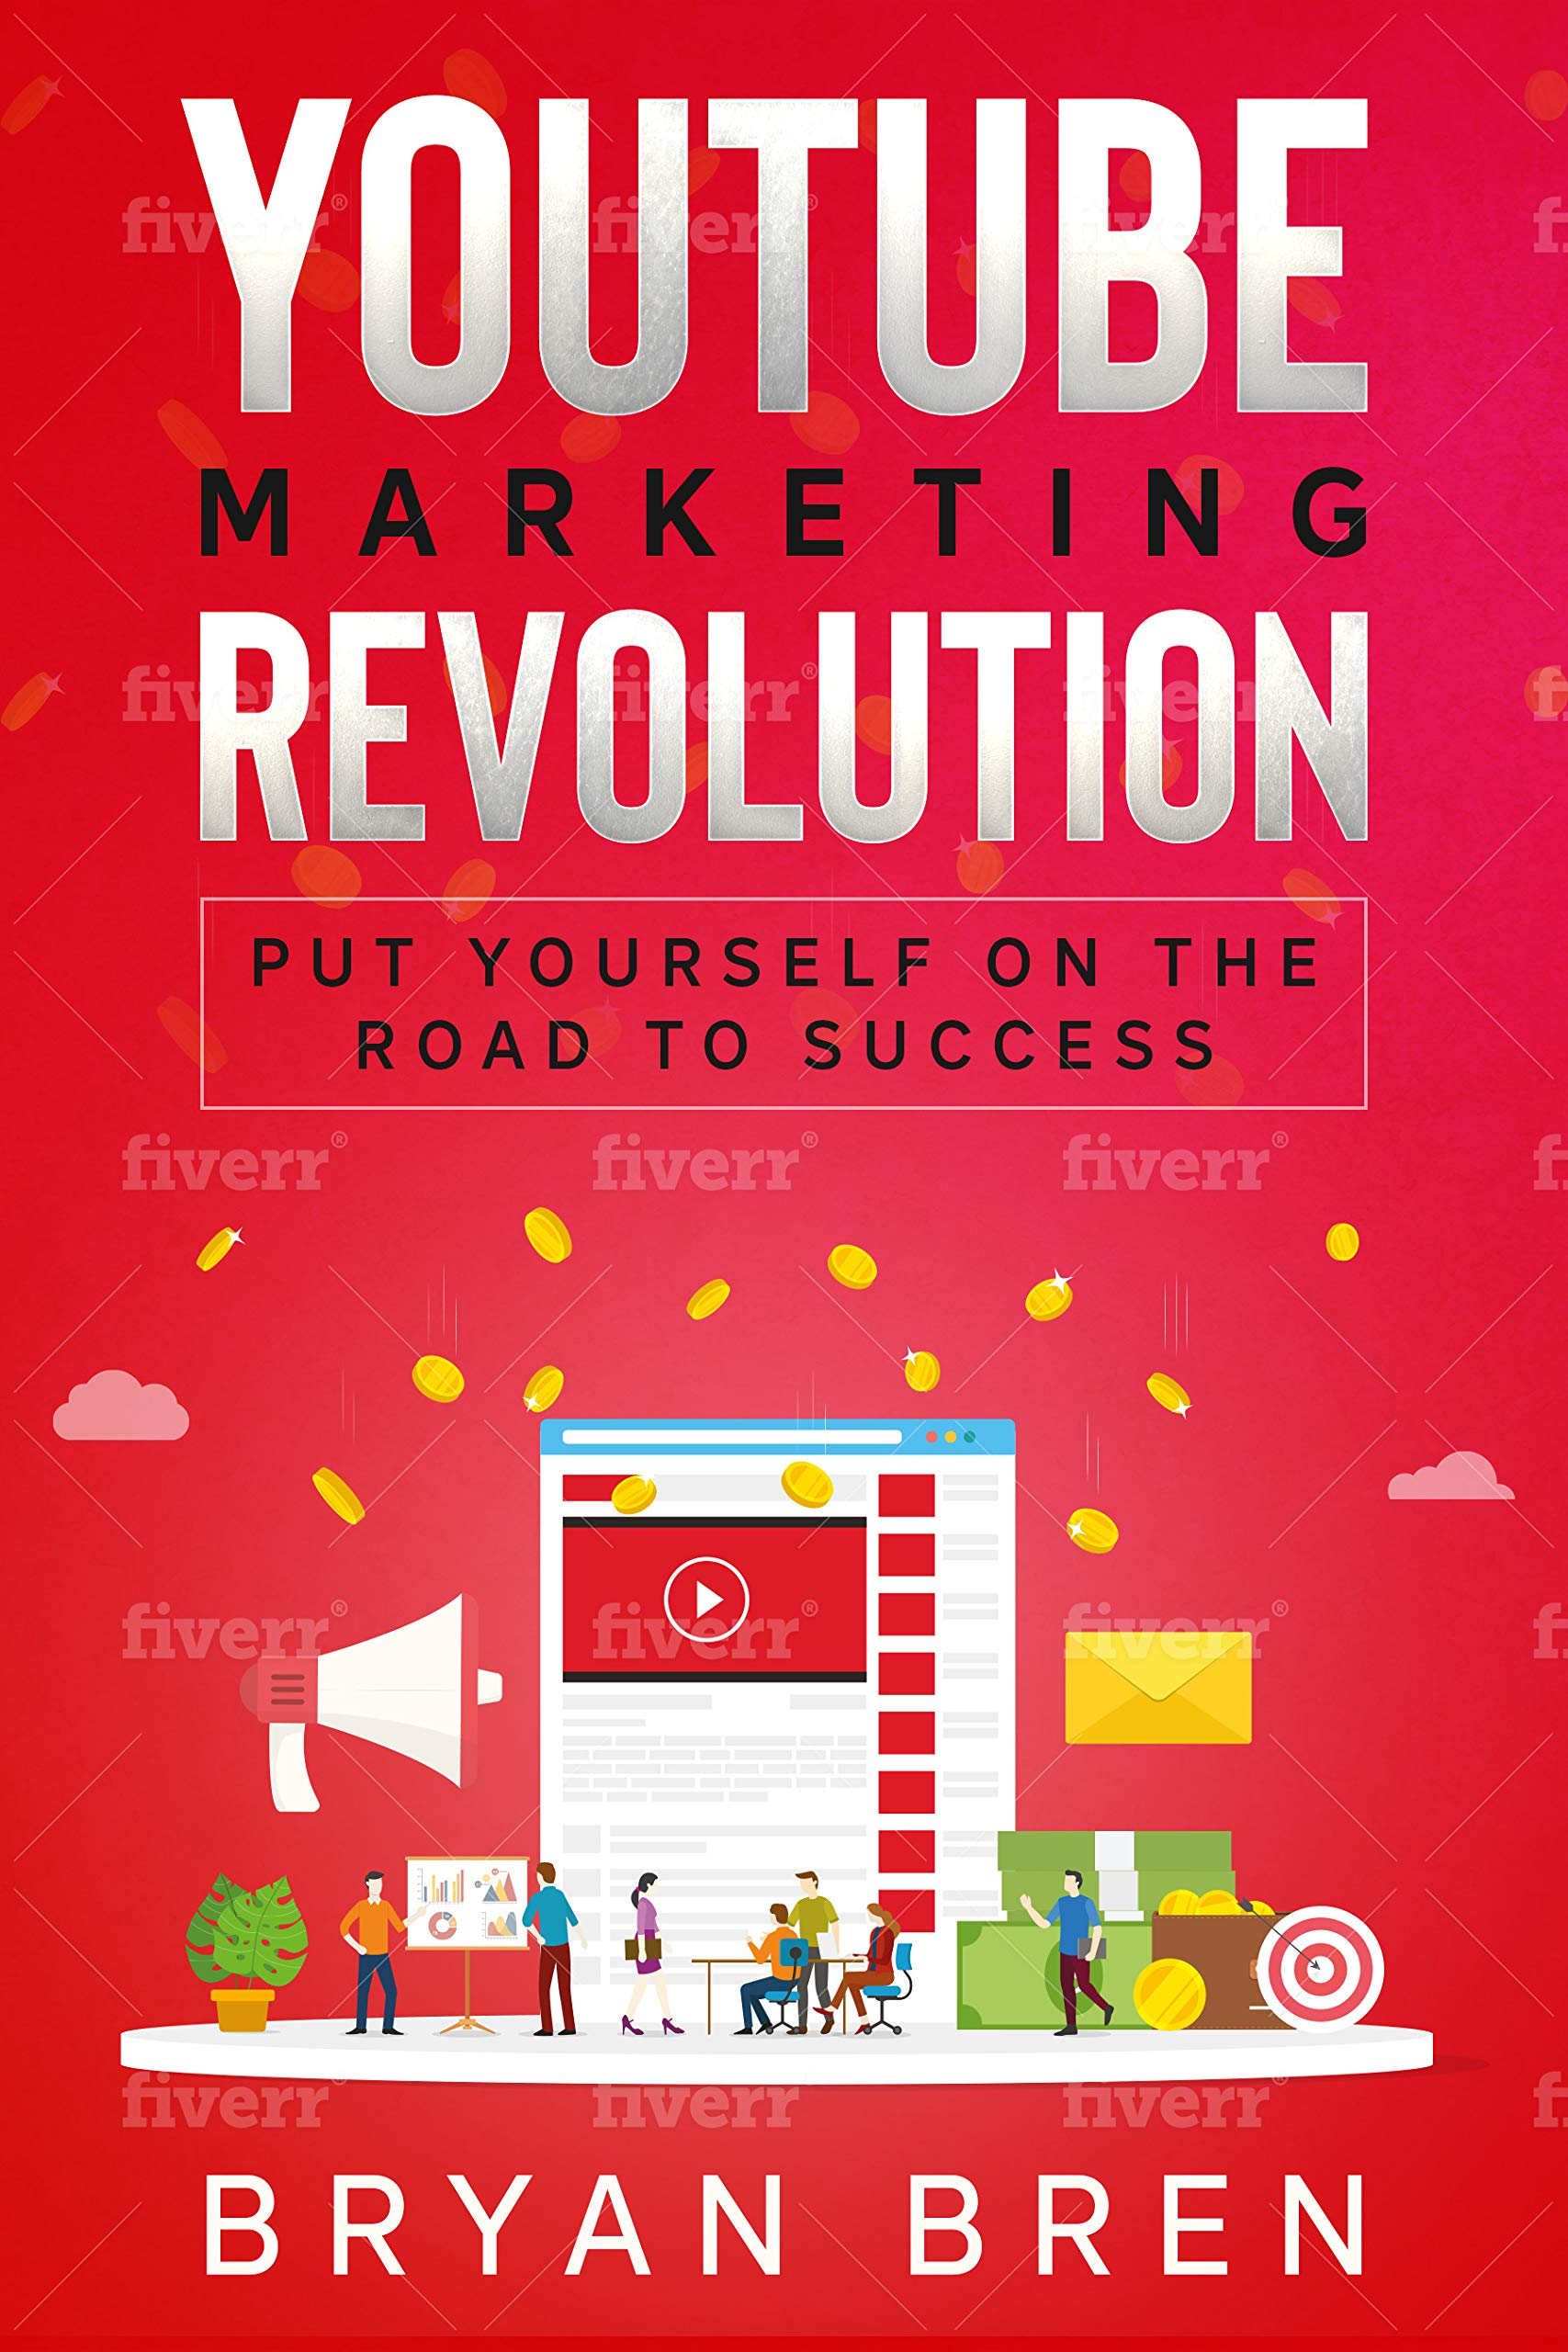 YouTube Marketing : Learn How To Become A Video Marketer And Sell Products And Services Online